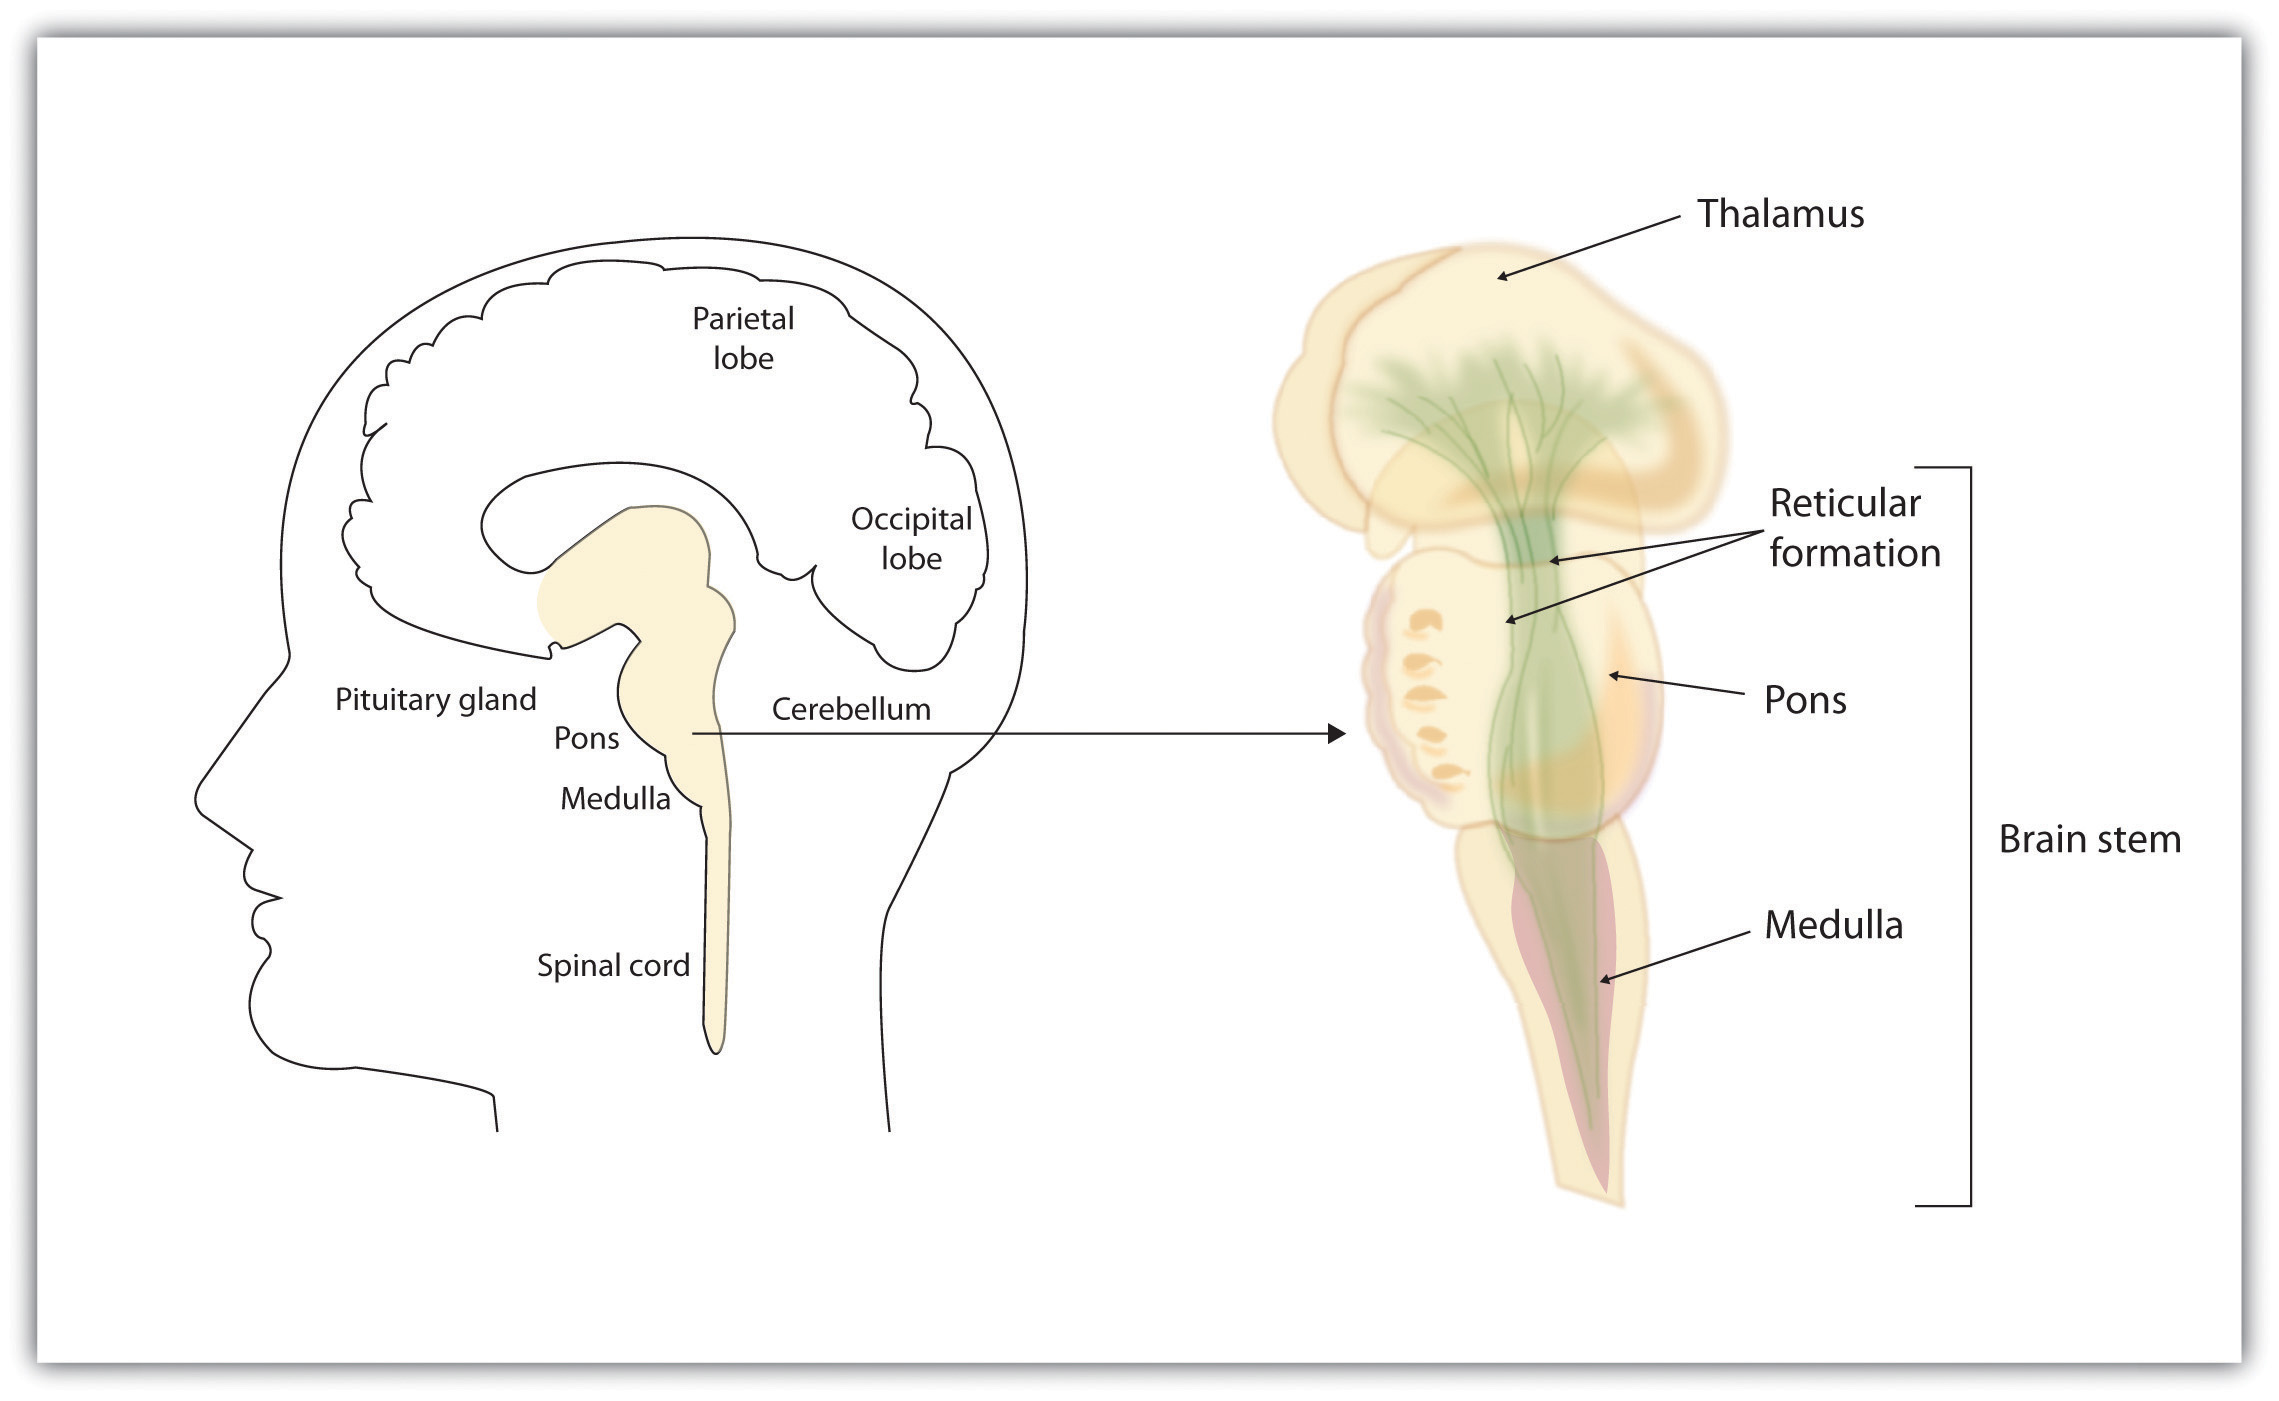 The brain stem and the thalamus